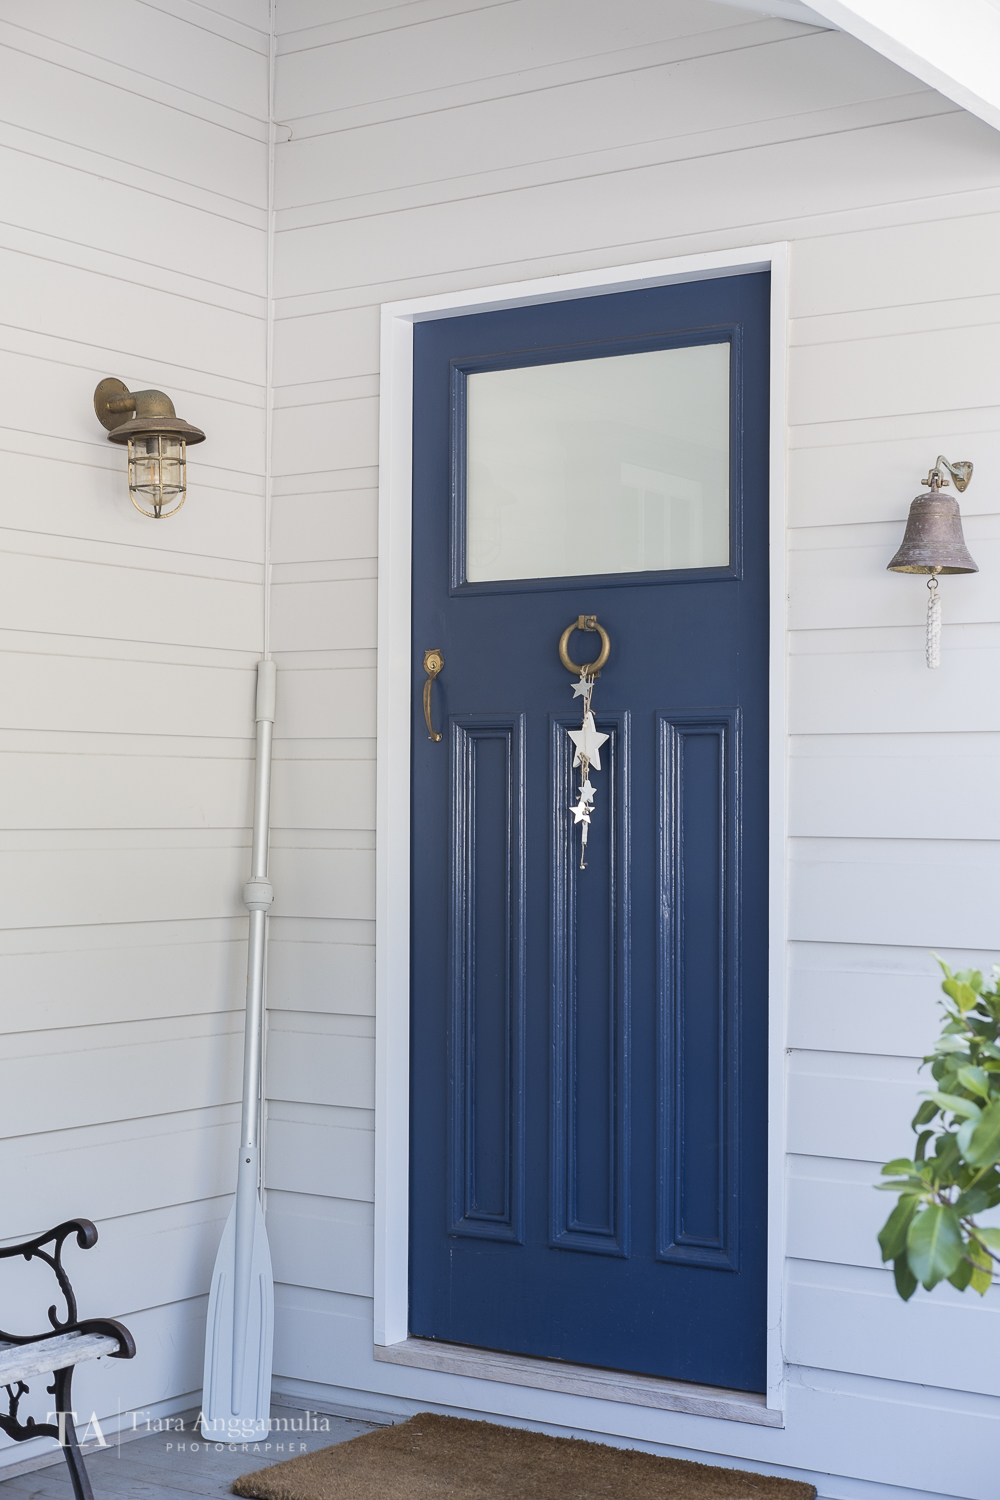 The view of a blue door.